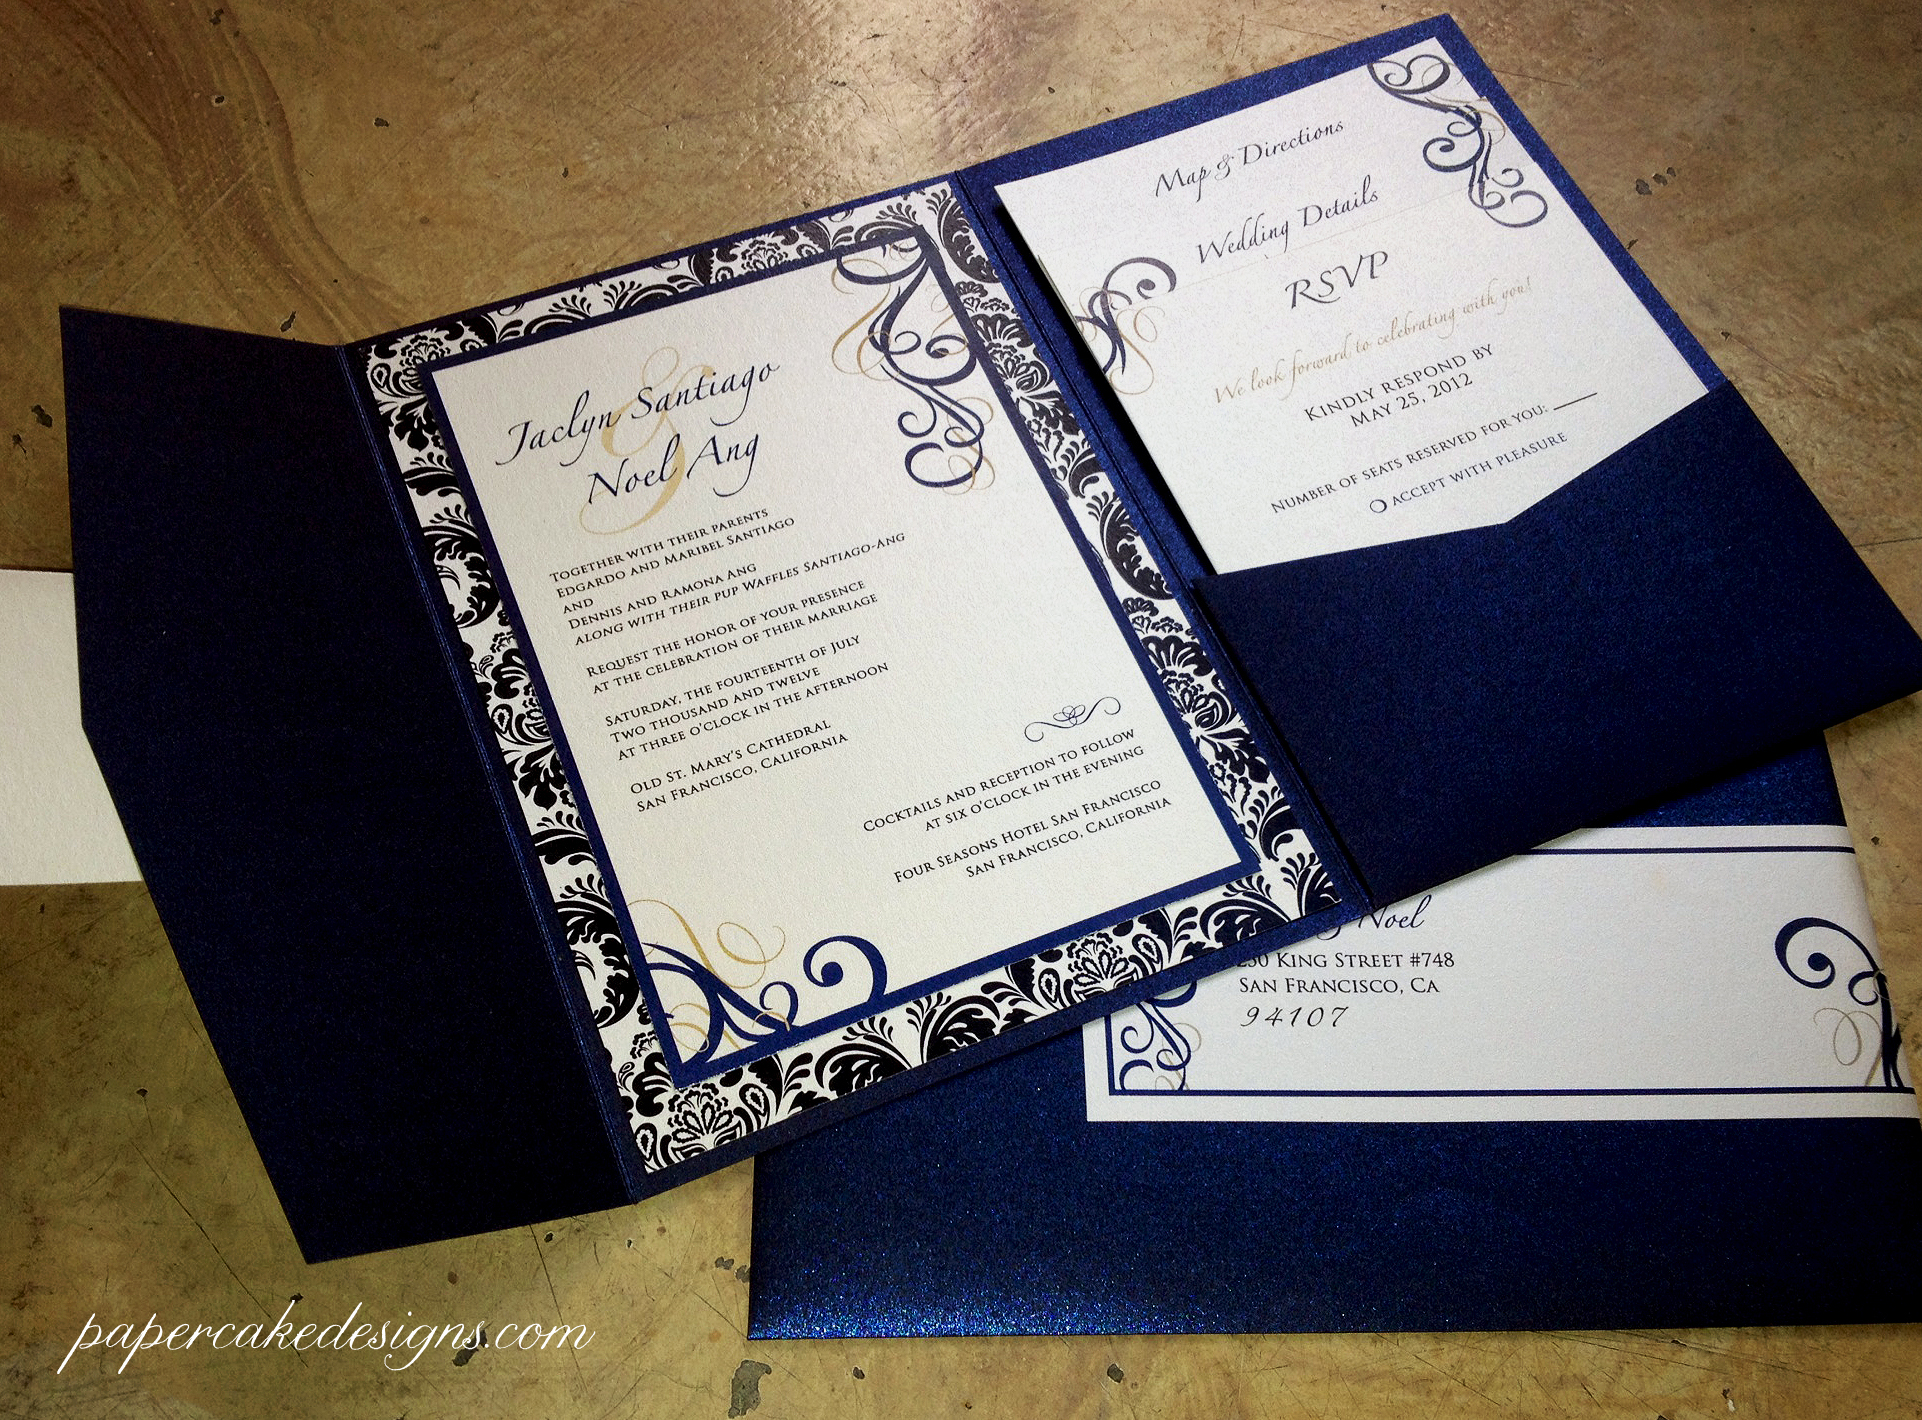 [DIY print & assemble] wedding invitations – papercake designs